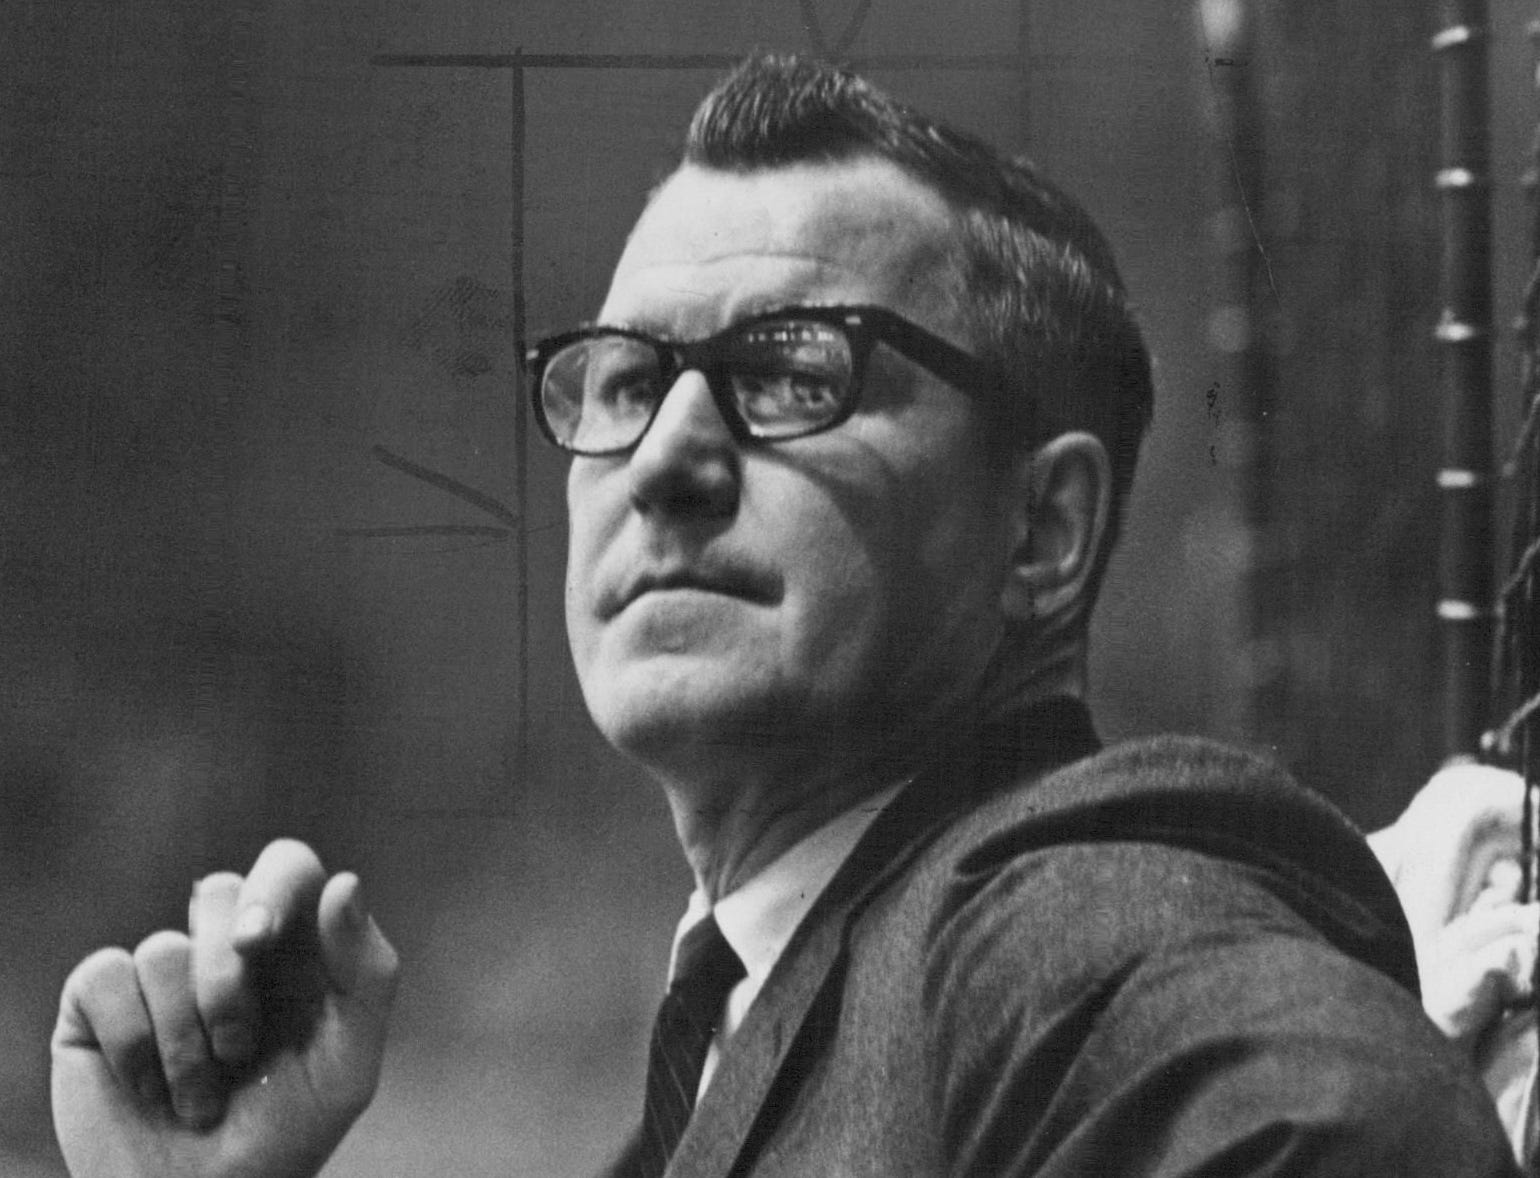 Joe Crozier coached the Rochester Americans from 1963-68, winning three Calder Cups.